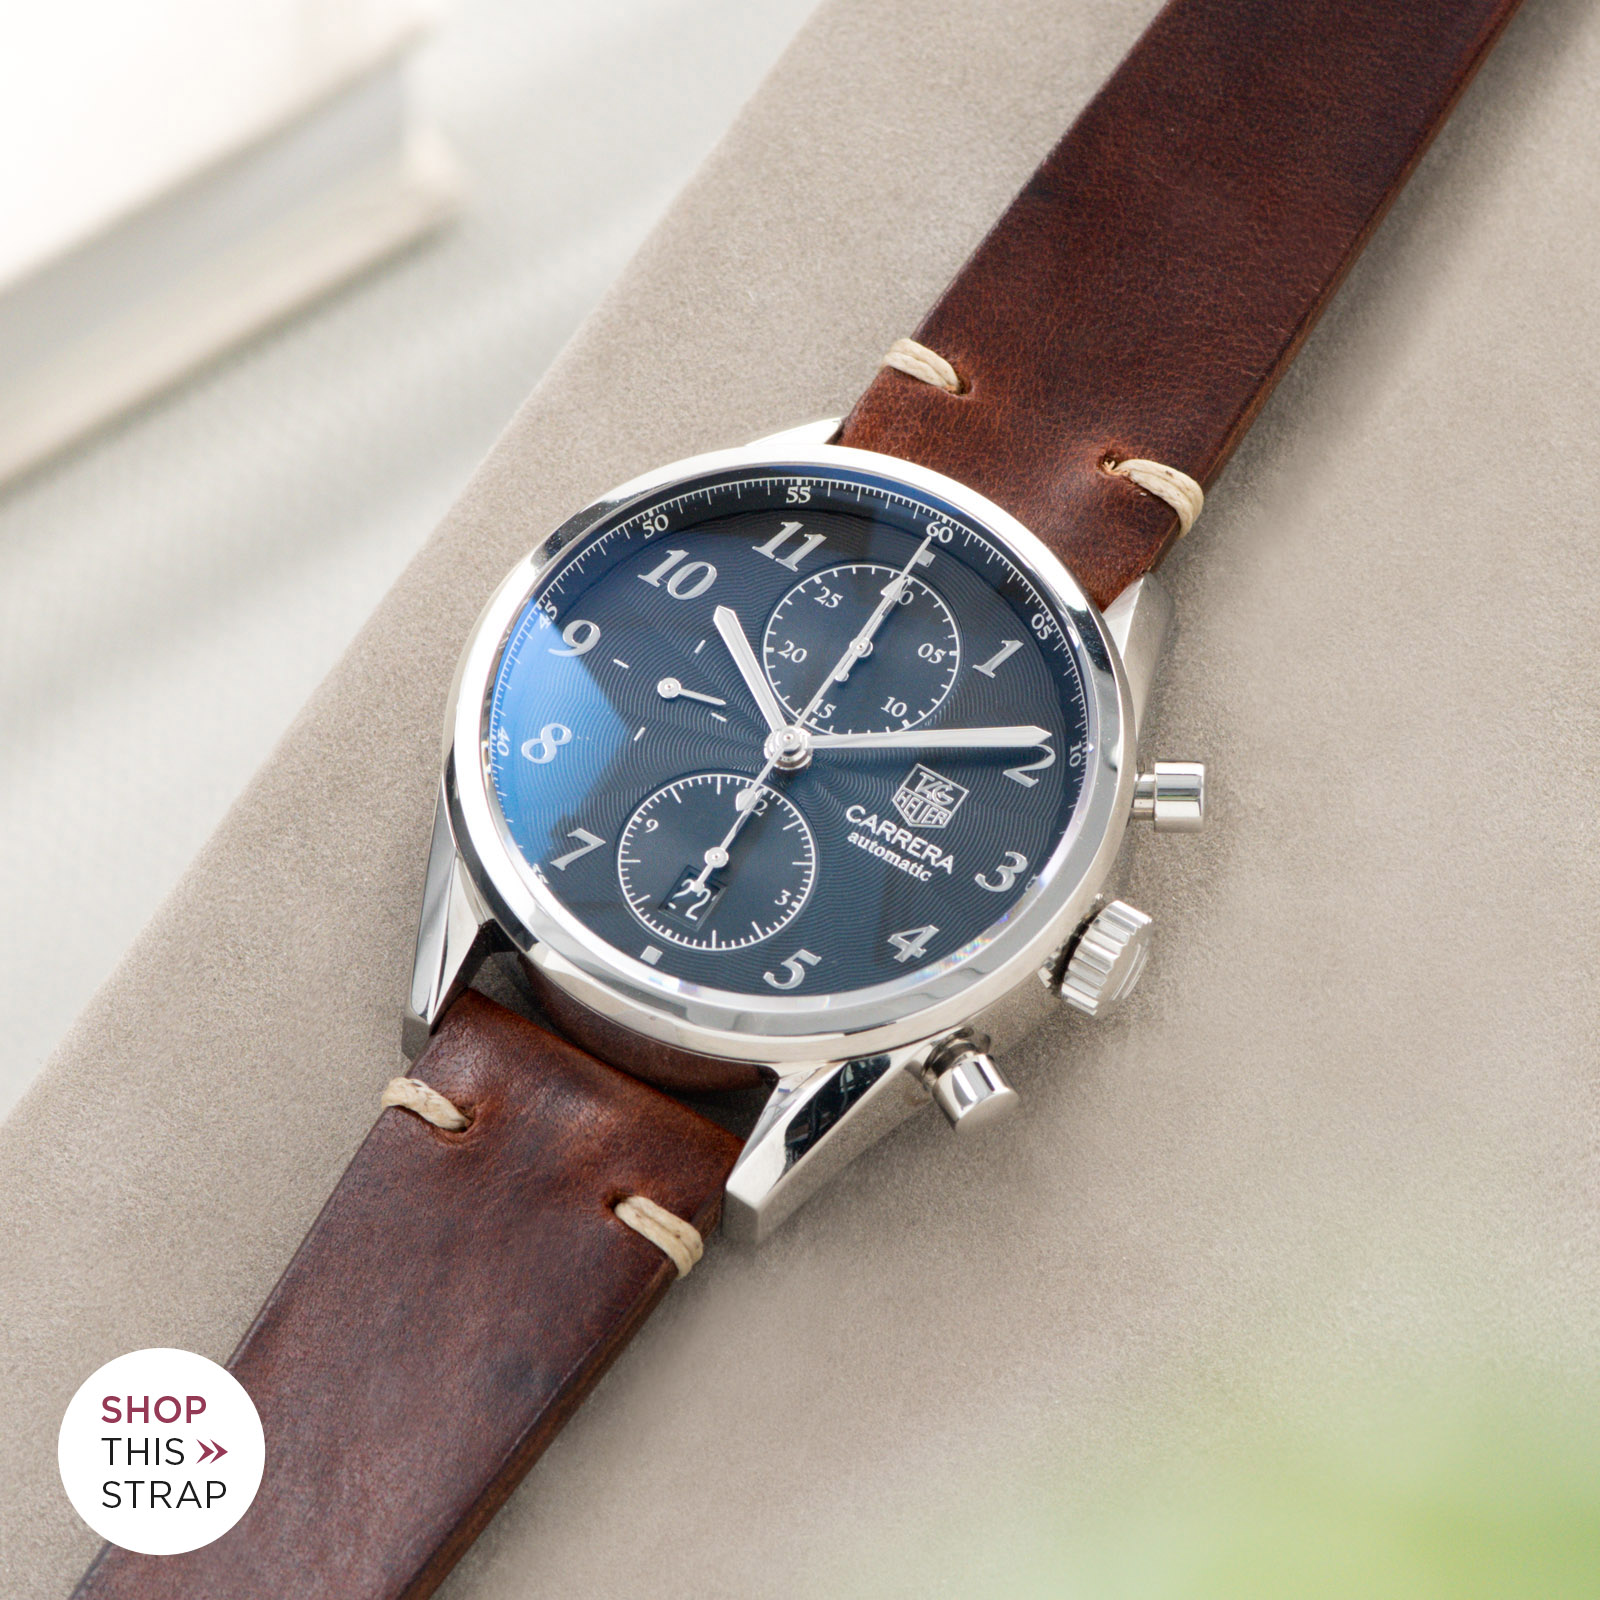 Bulang and Sons_Strap guide_Heuer Carrera Automatic_Siena Brown Leather Watch Strap